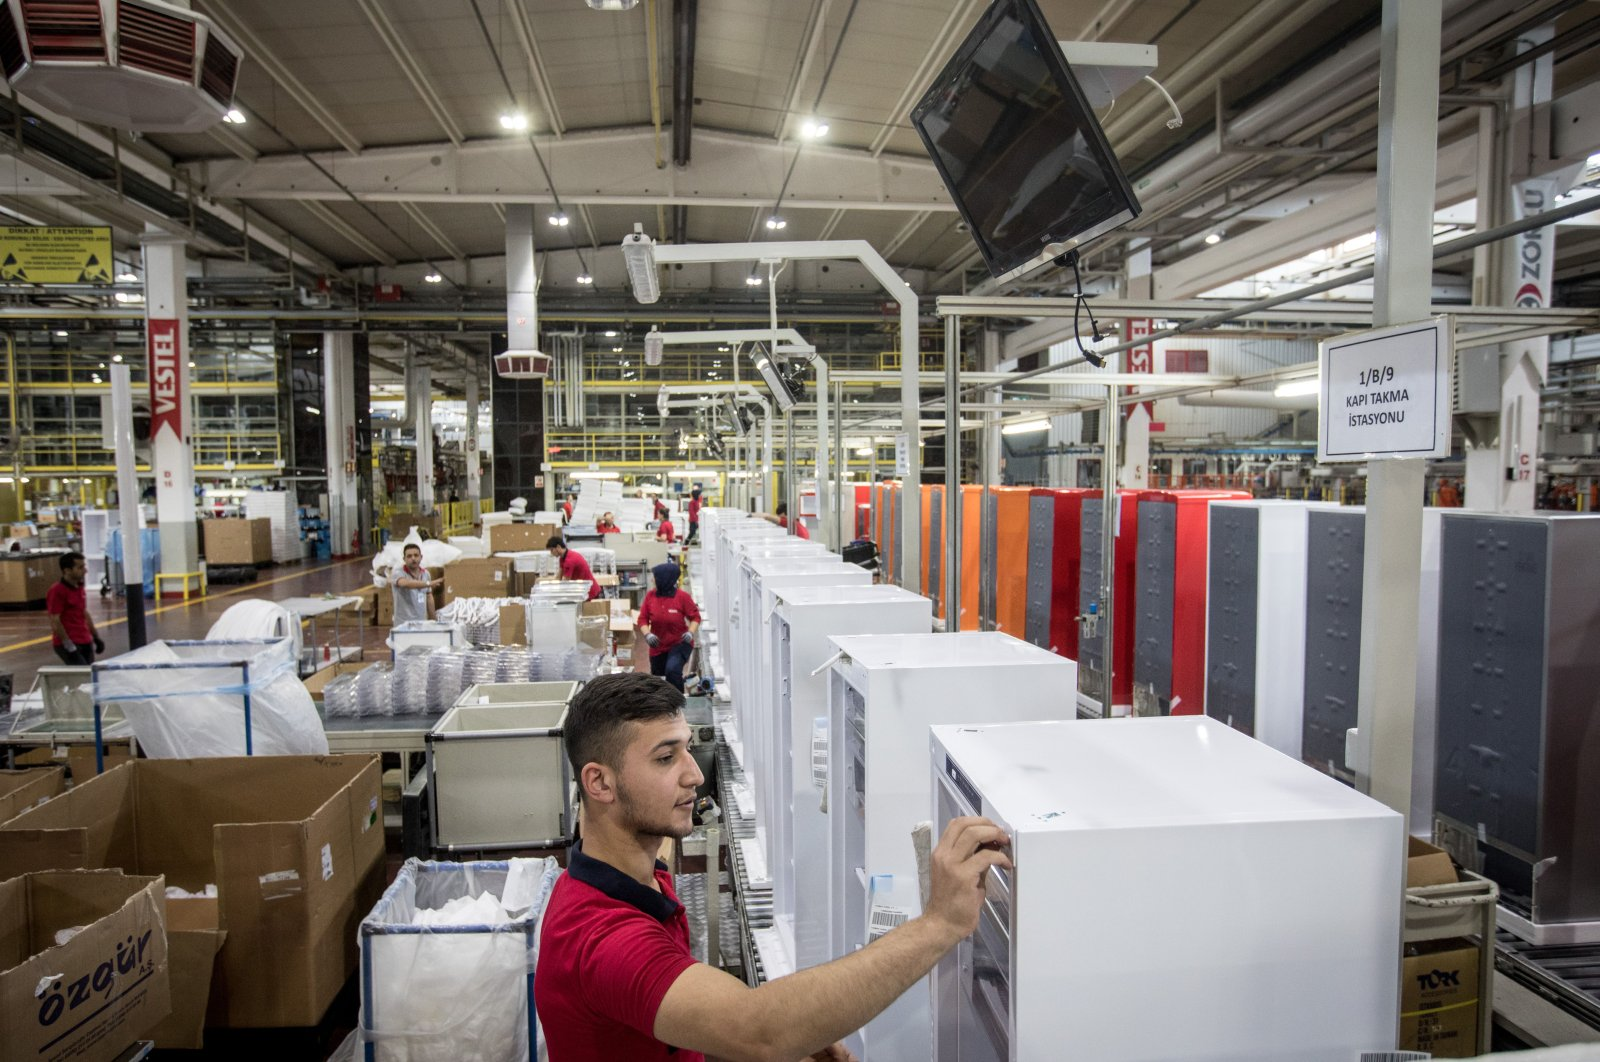 Employees work on a refrigerator production line in the Vestel City mega factory in the western Manisa province, Turkey, May 14, 2018. (Getty Images)